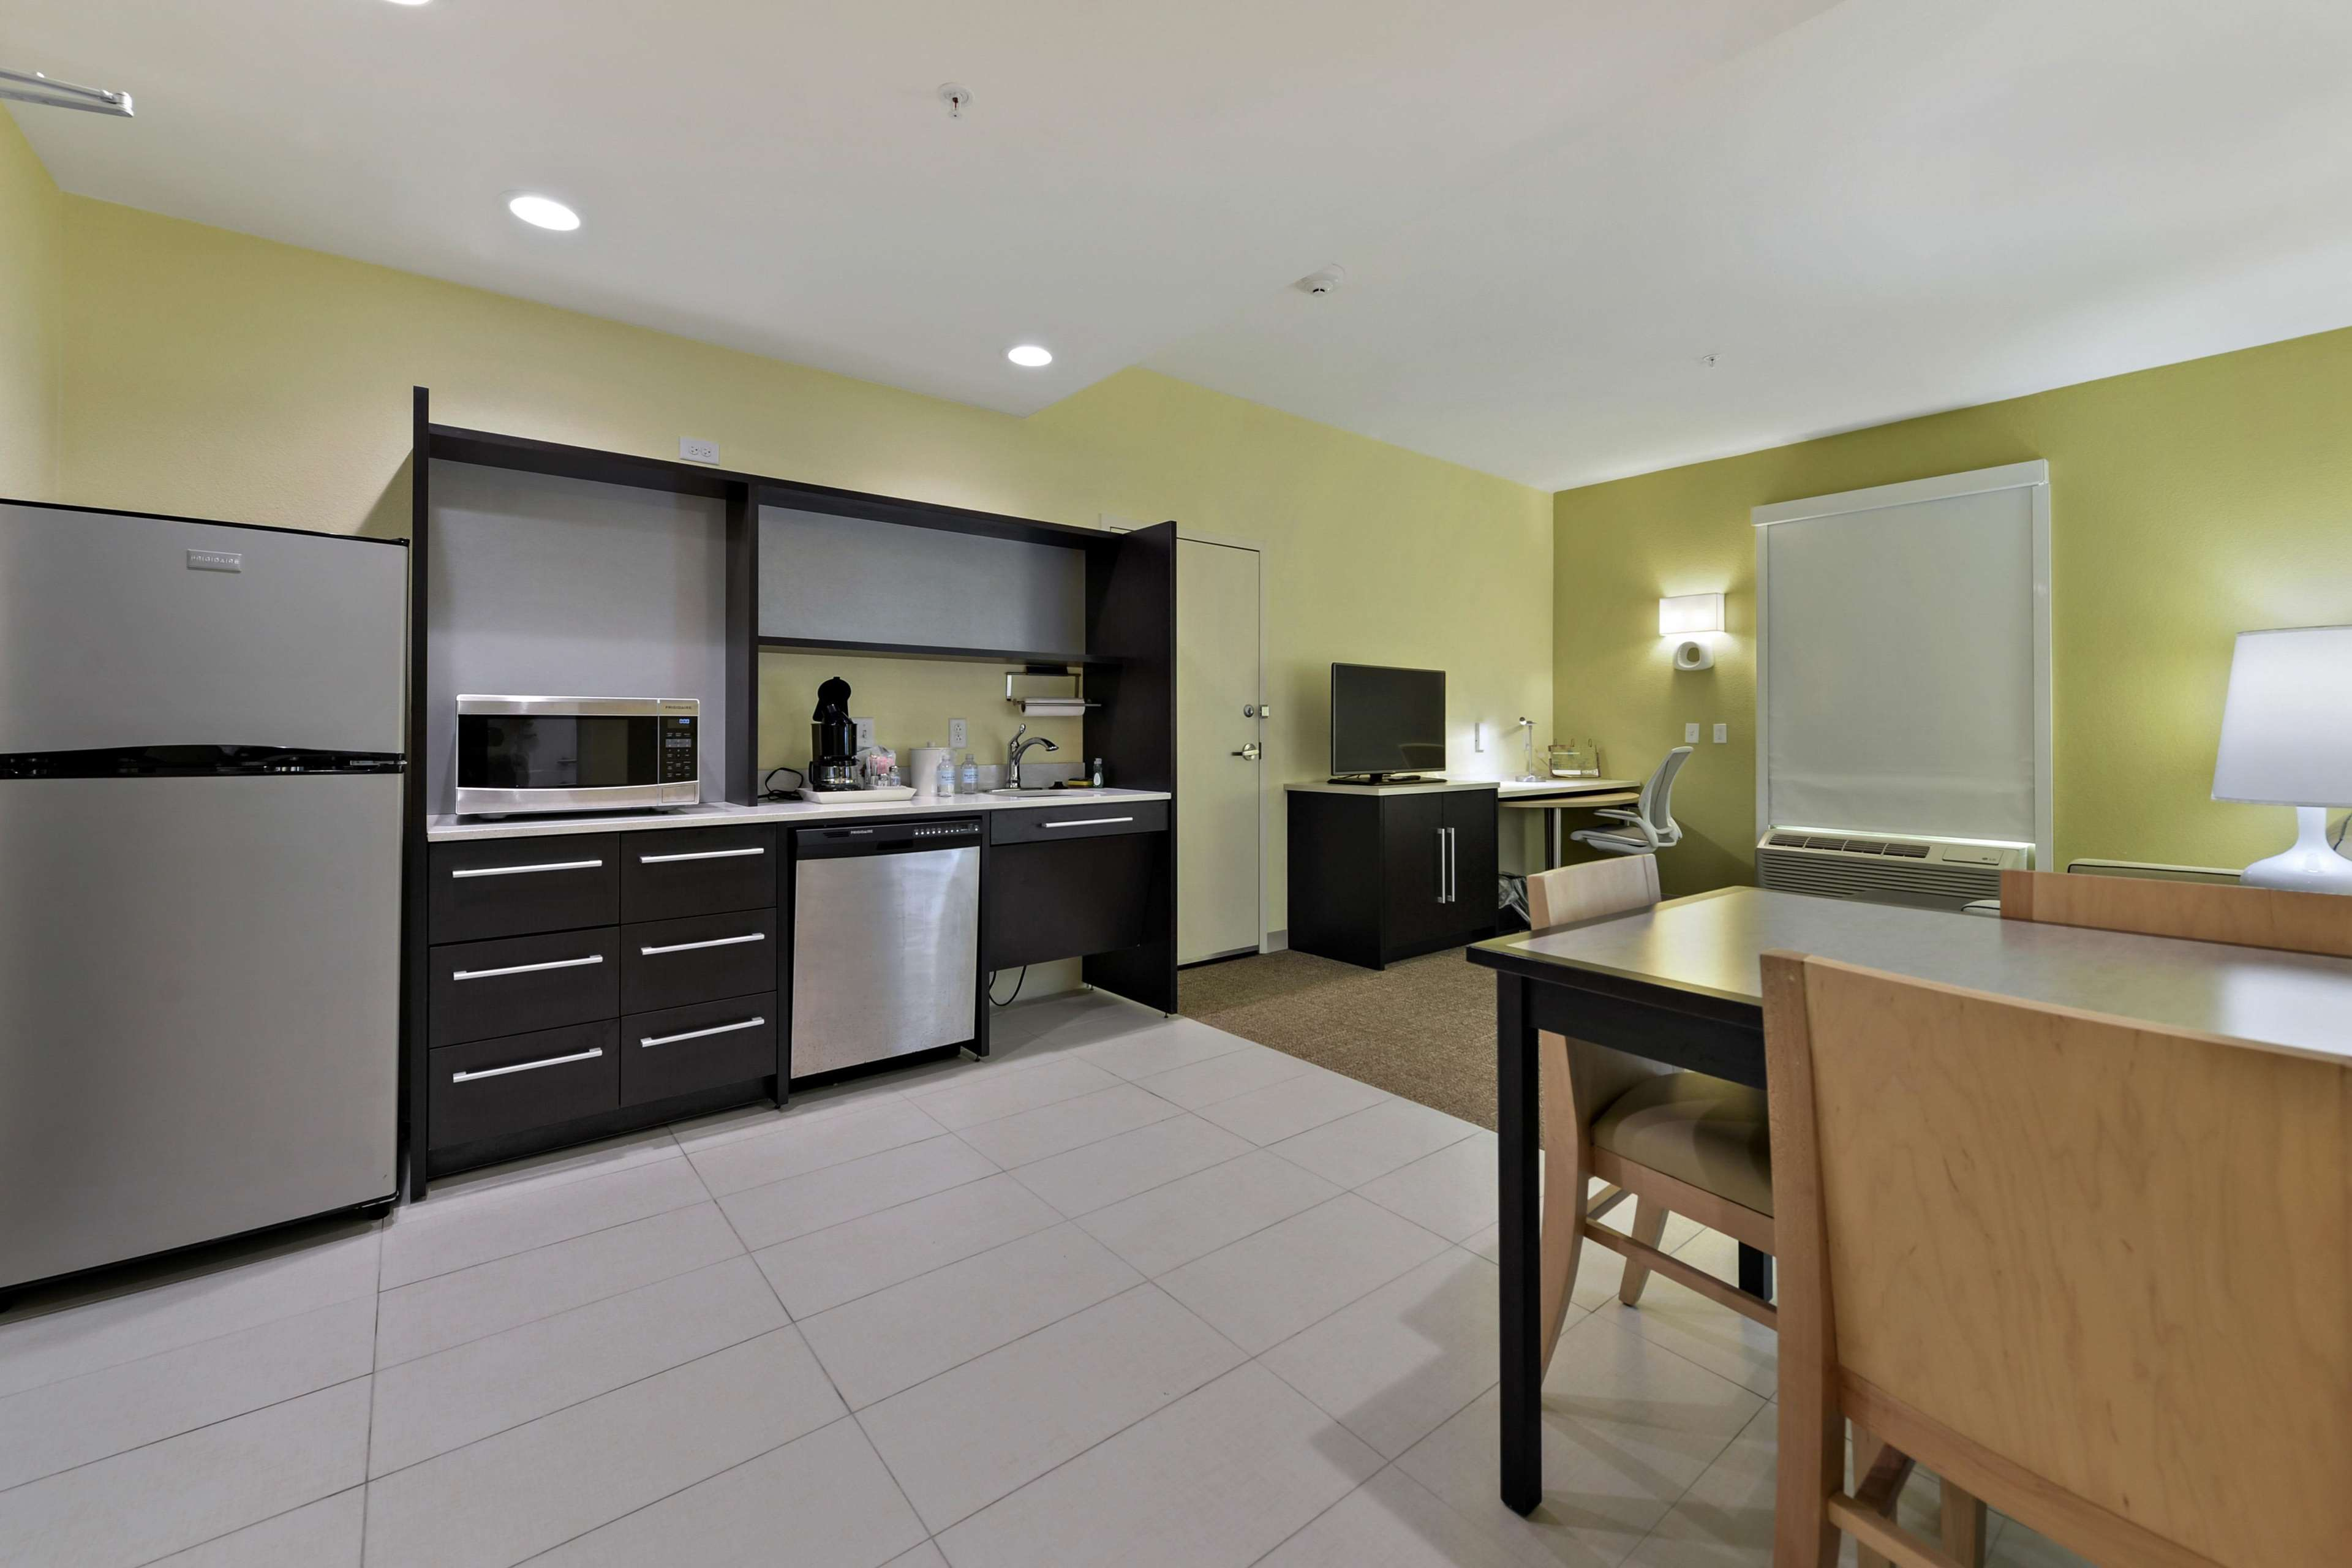 Home2 Suites by Hilton Gulfport I-10 image 35